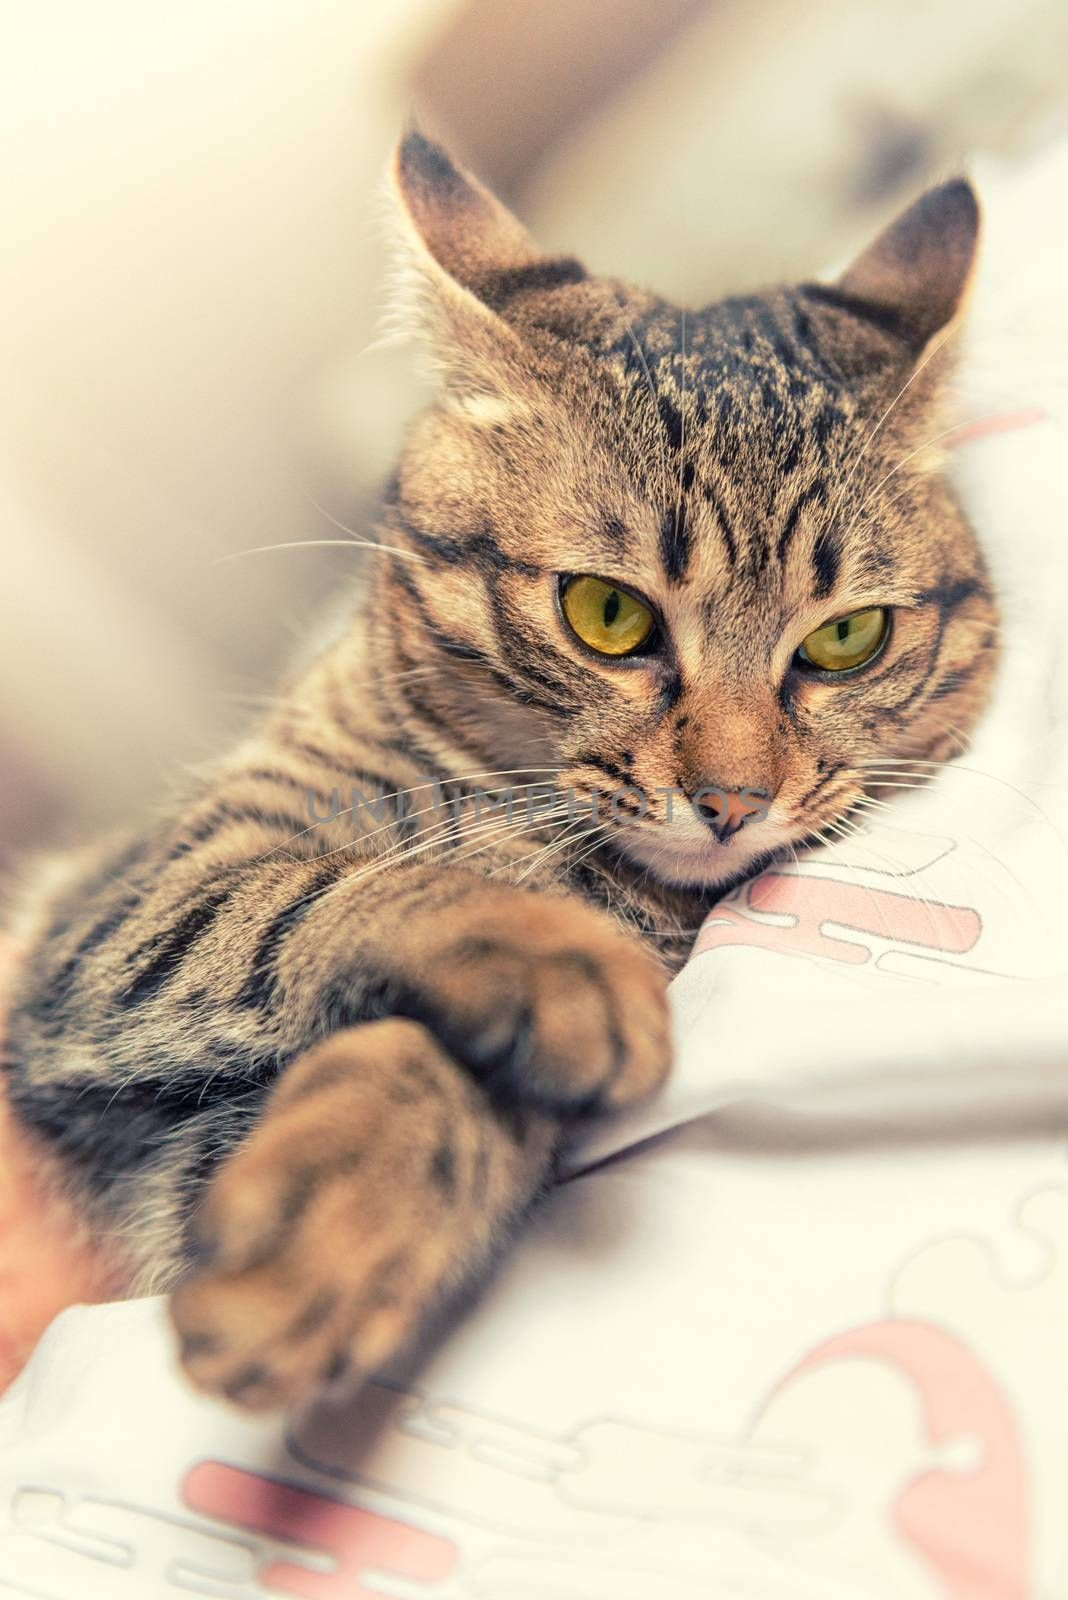 Tabby cat with yellow eyes relaxed on bed